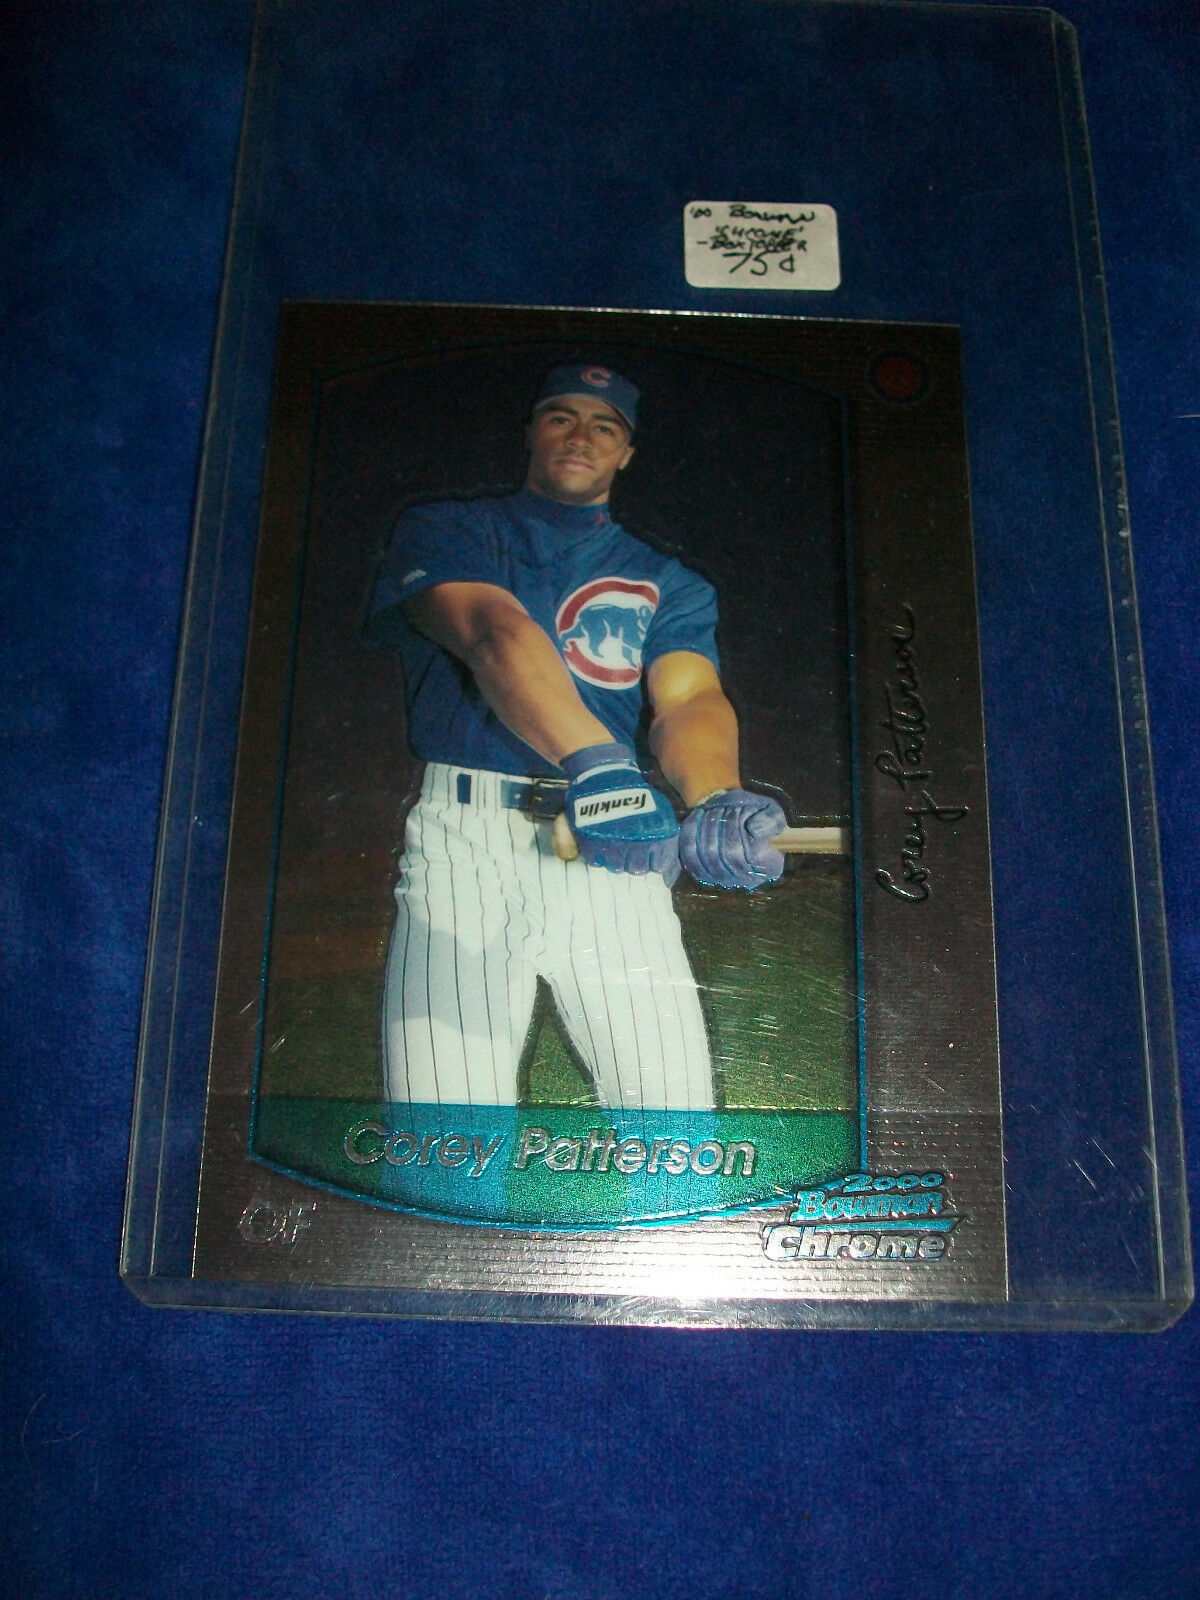 Primary image for 2000 Bowman Chrome Oversize Jumbo #4 Corey Patterson - Chicago Cubs